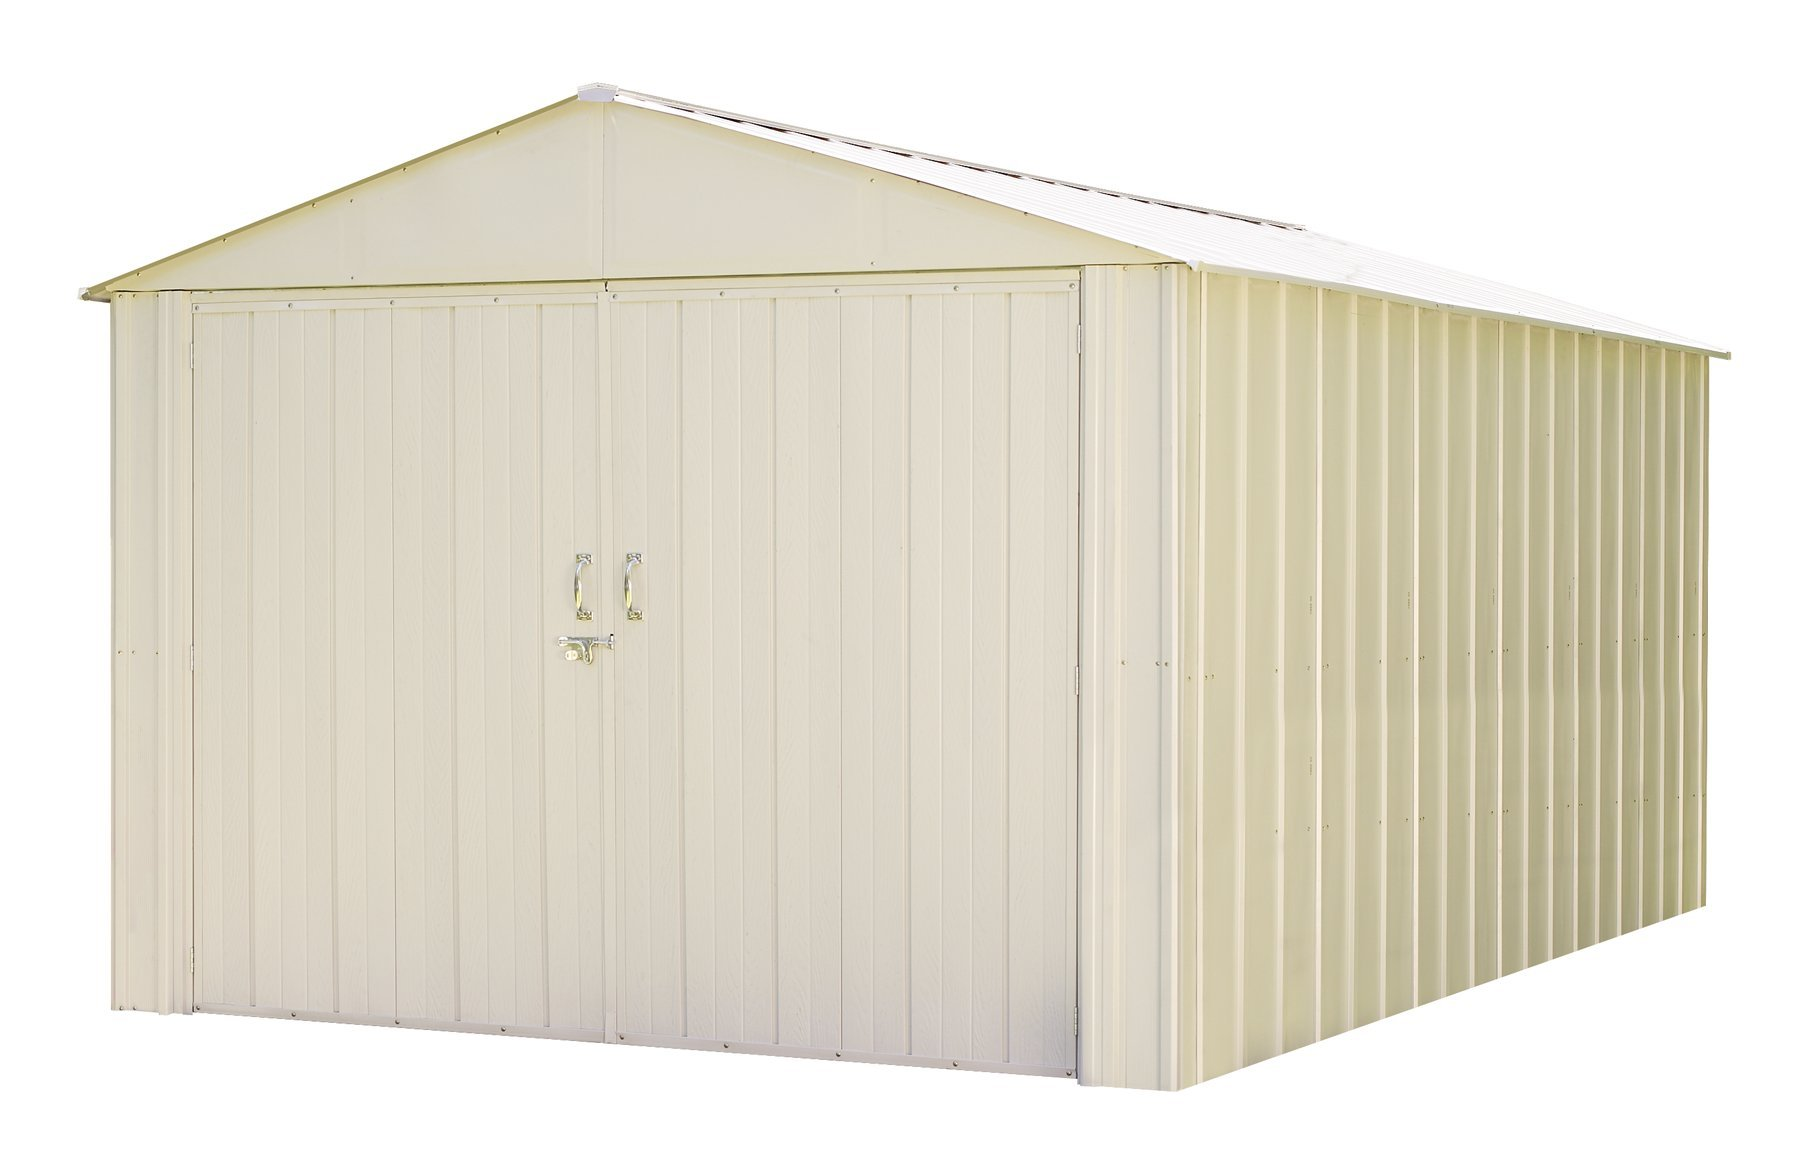 Commander, 10x15, Hot Dipped Galvanized Steel, Eggshell, High Gable, 71.3'' Wall Height, Extra Wide Swing Doors